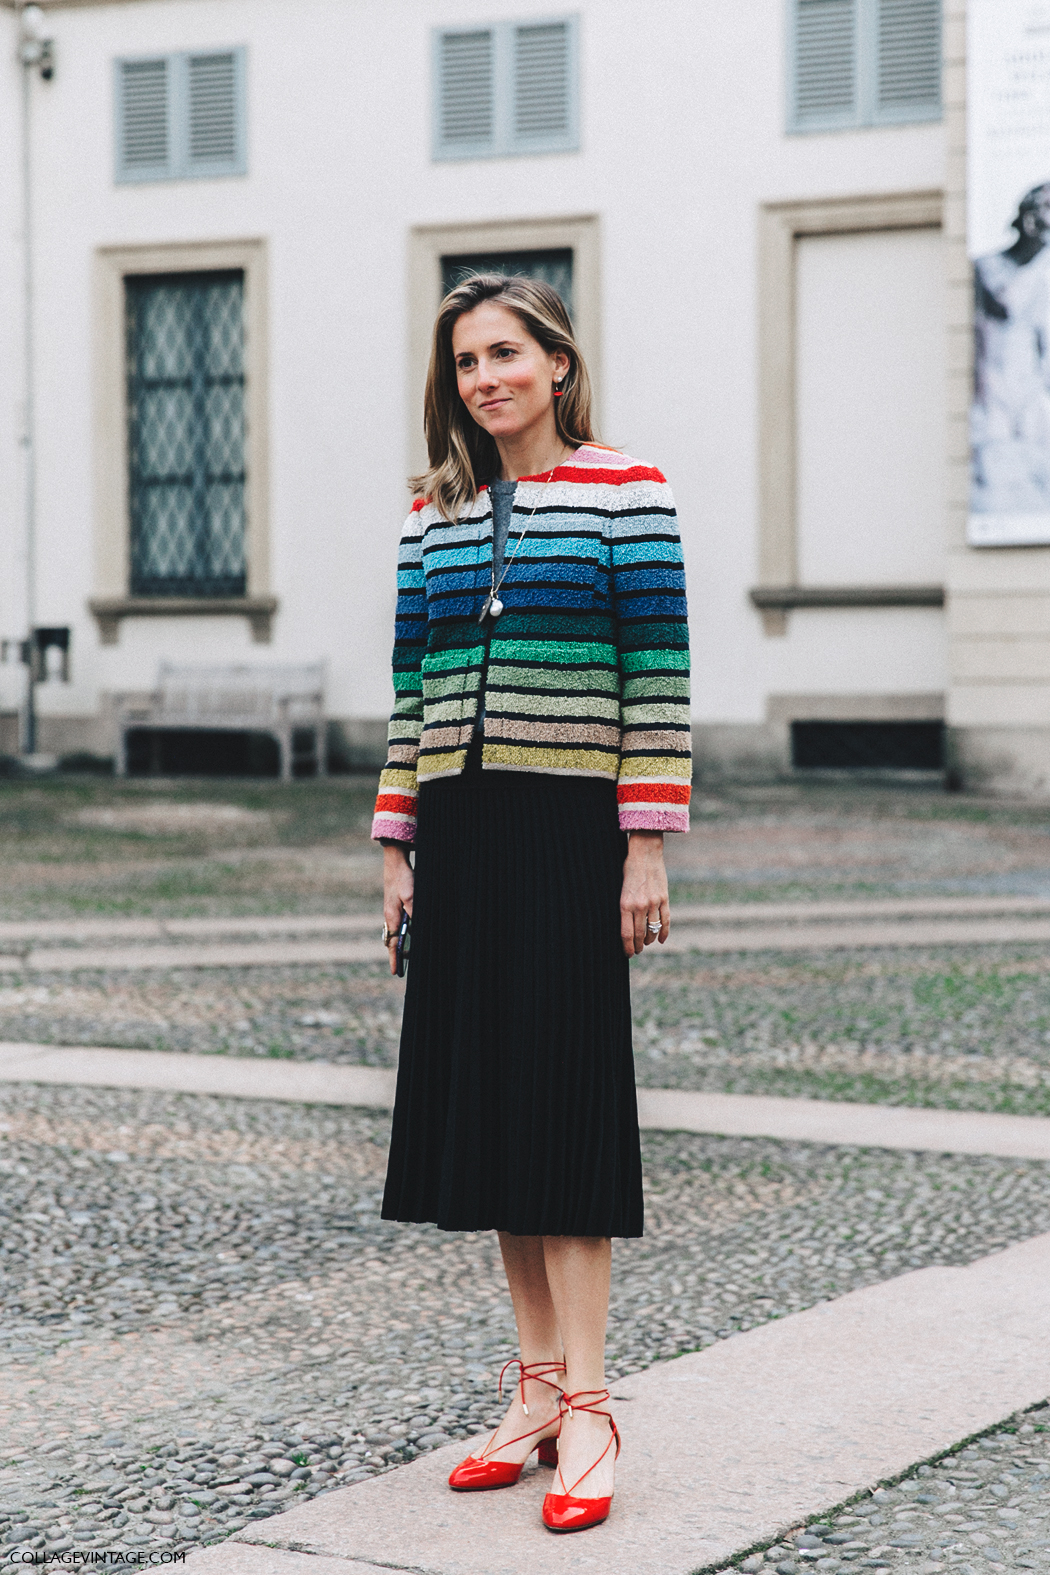 Milan_Fashion_Week_Fall_16-MFW-Street_Style-Collage_Vintage-Striped_Jacket-Pleated_Midi_Skirt-Aquazzura_Flats-Marina_Larroude-2